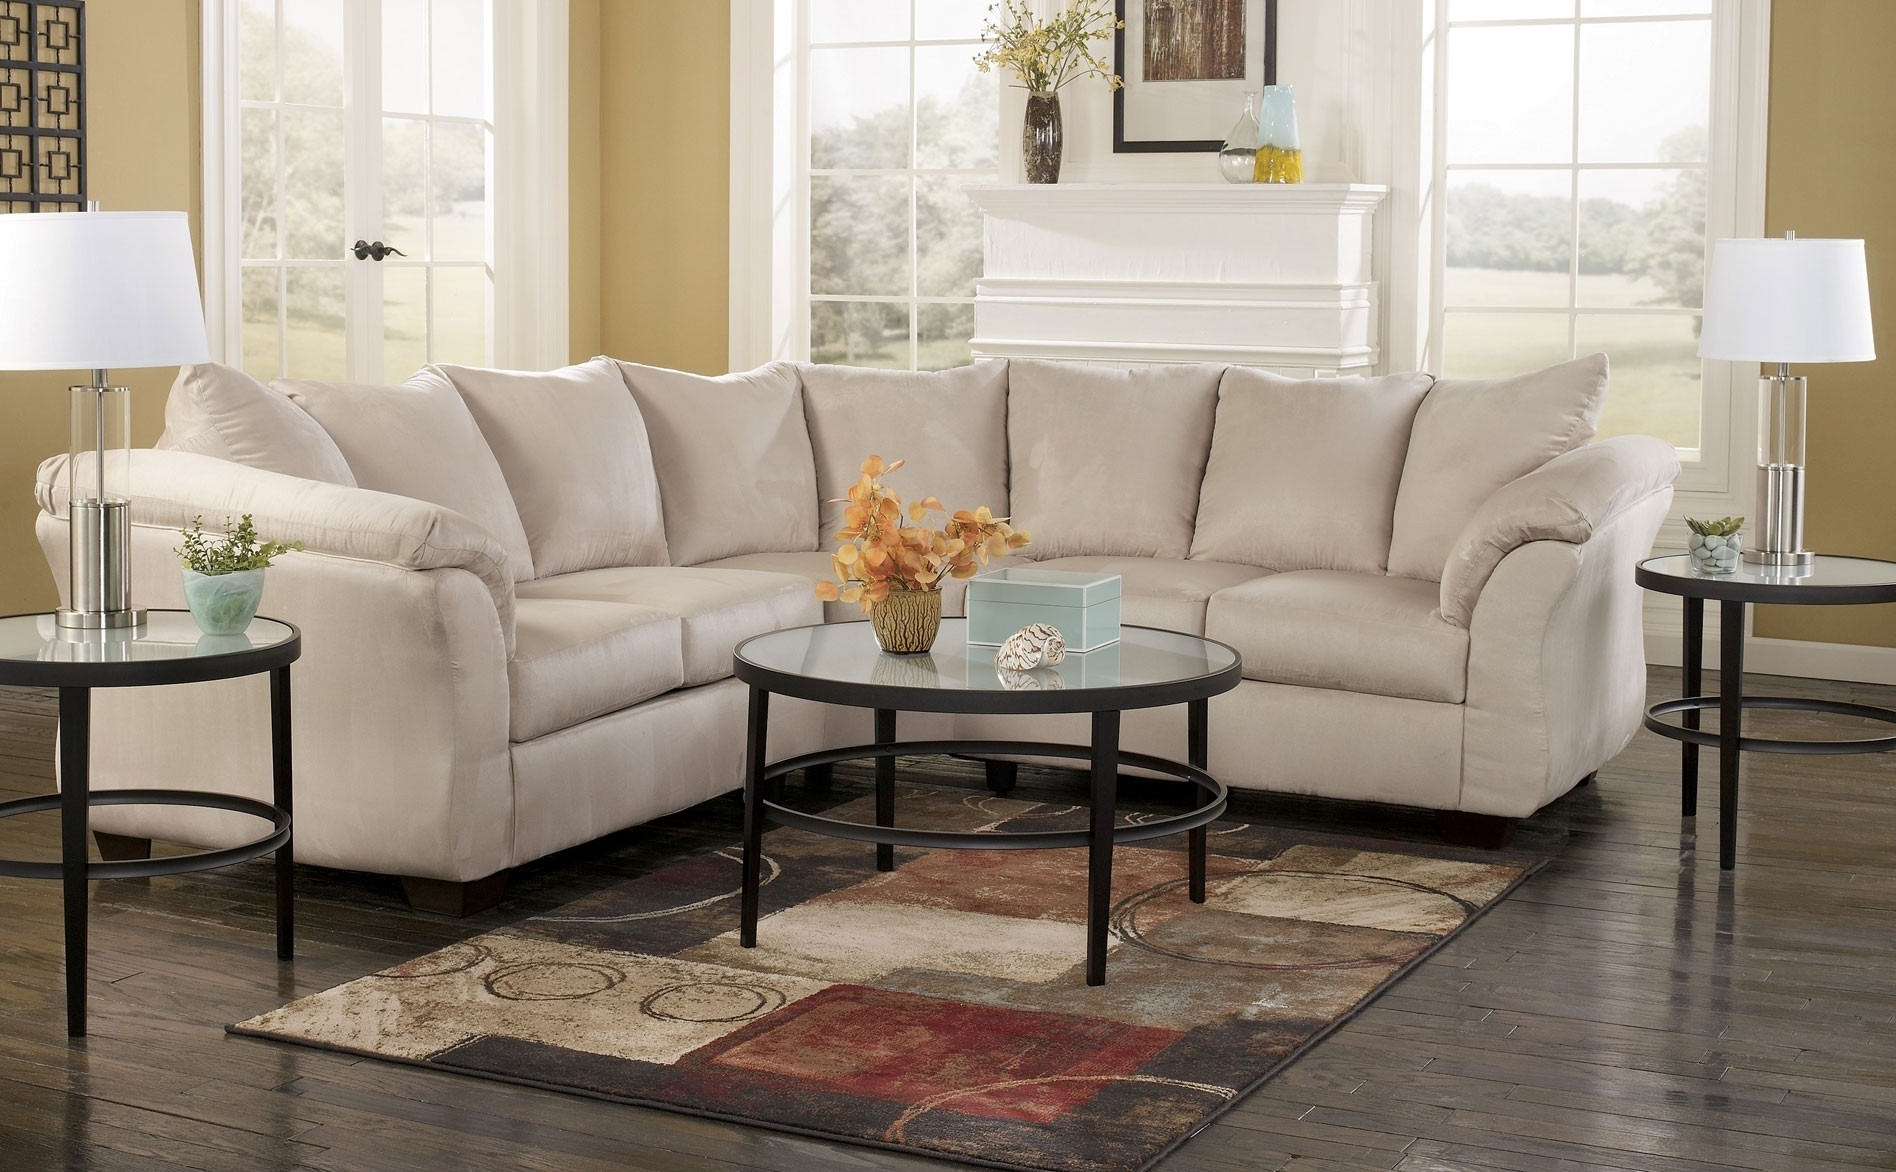 of cheap ashley complete room for pit furniture reviews bobs leather sectionals sectional living full top grain under size discount jennings set sets review